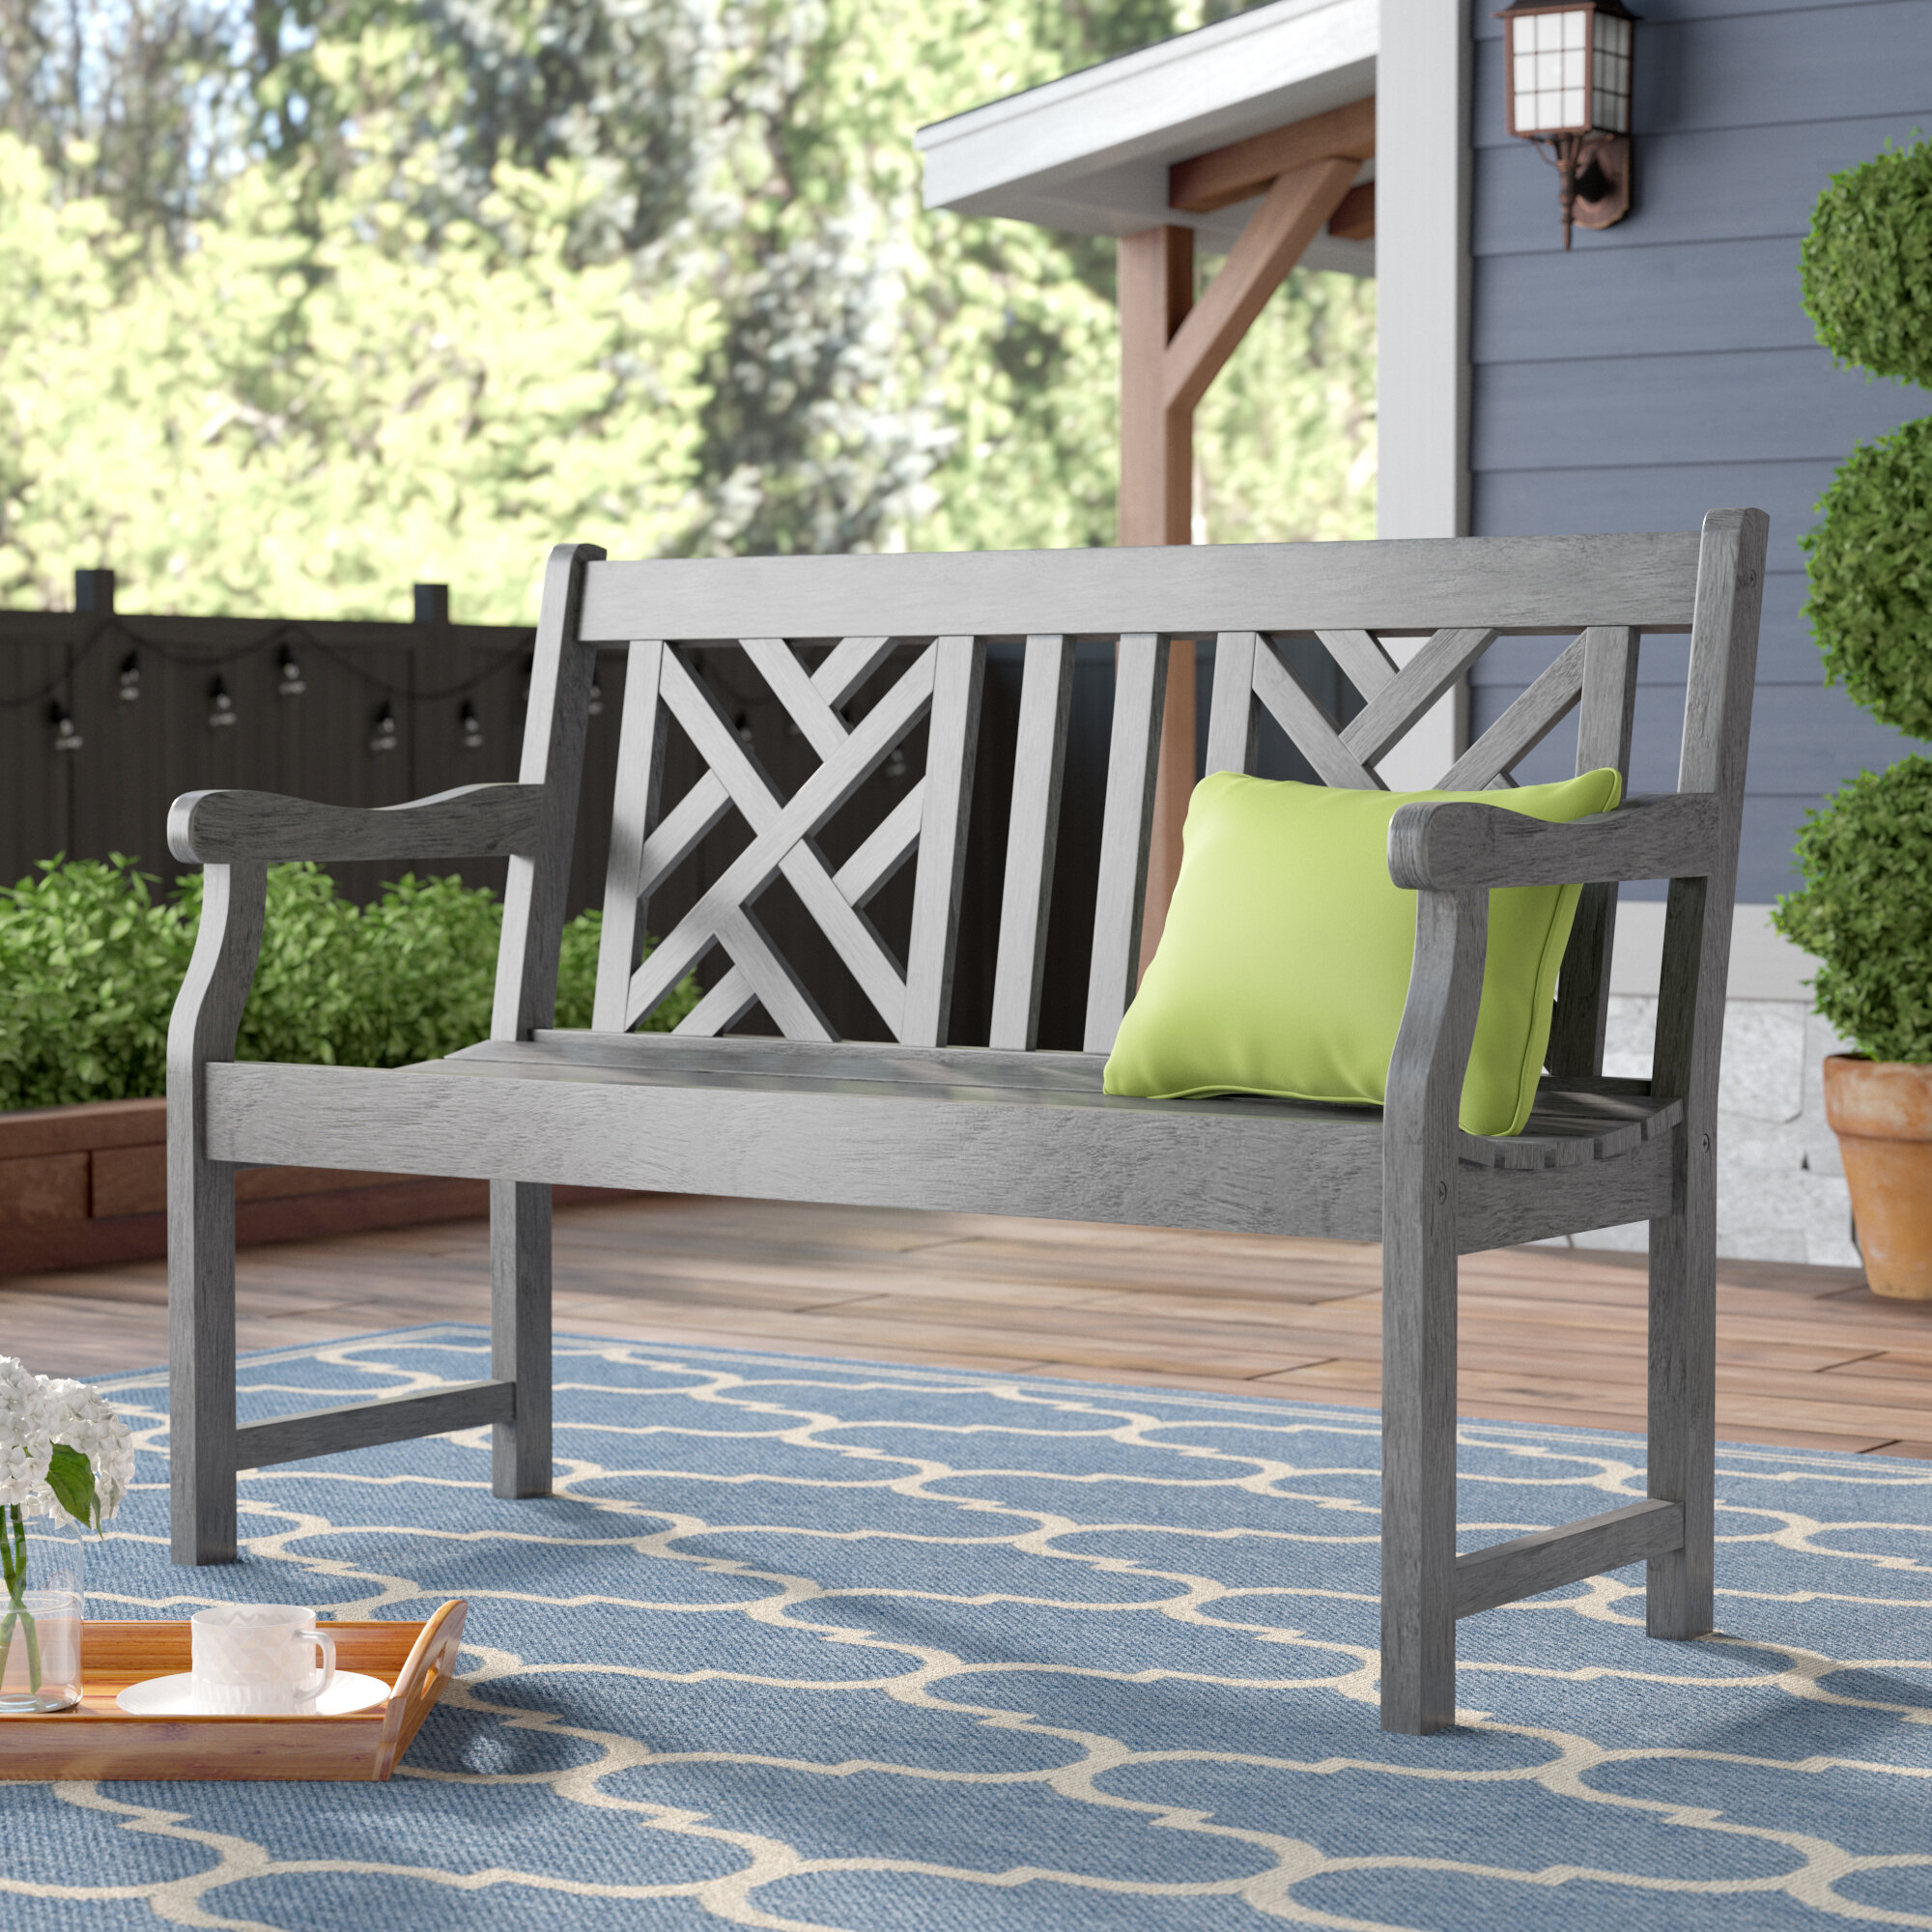 Outdoor Benches You'Ll Love In 2020 | Wayfair With Regard To Ahana Wooden Garden Benches (View 14 of 25)